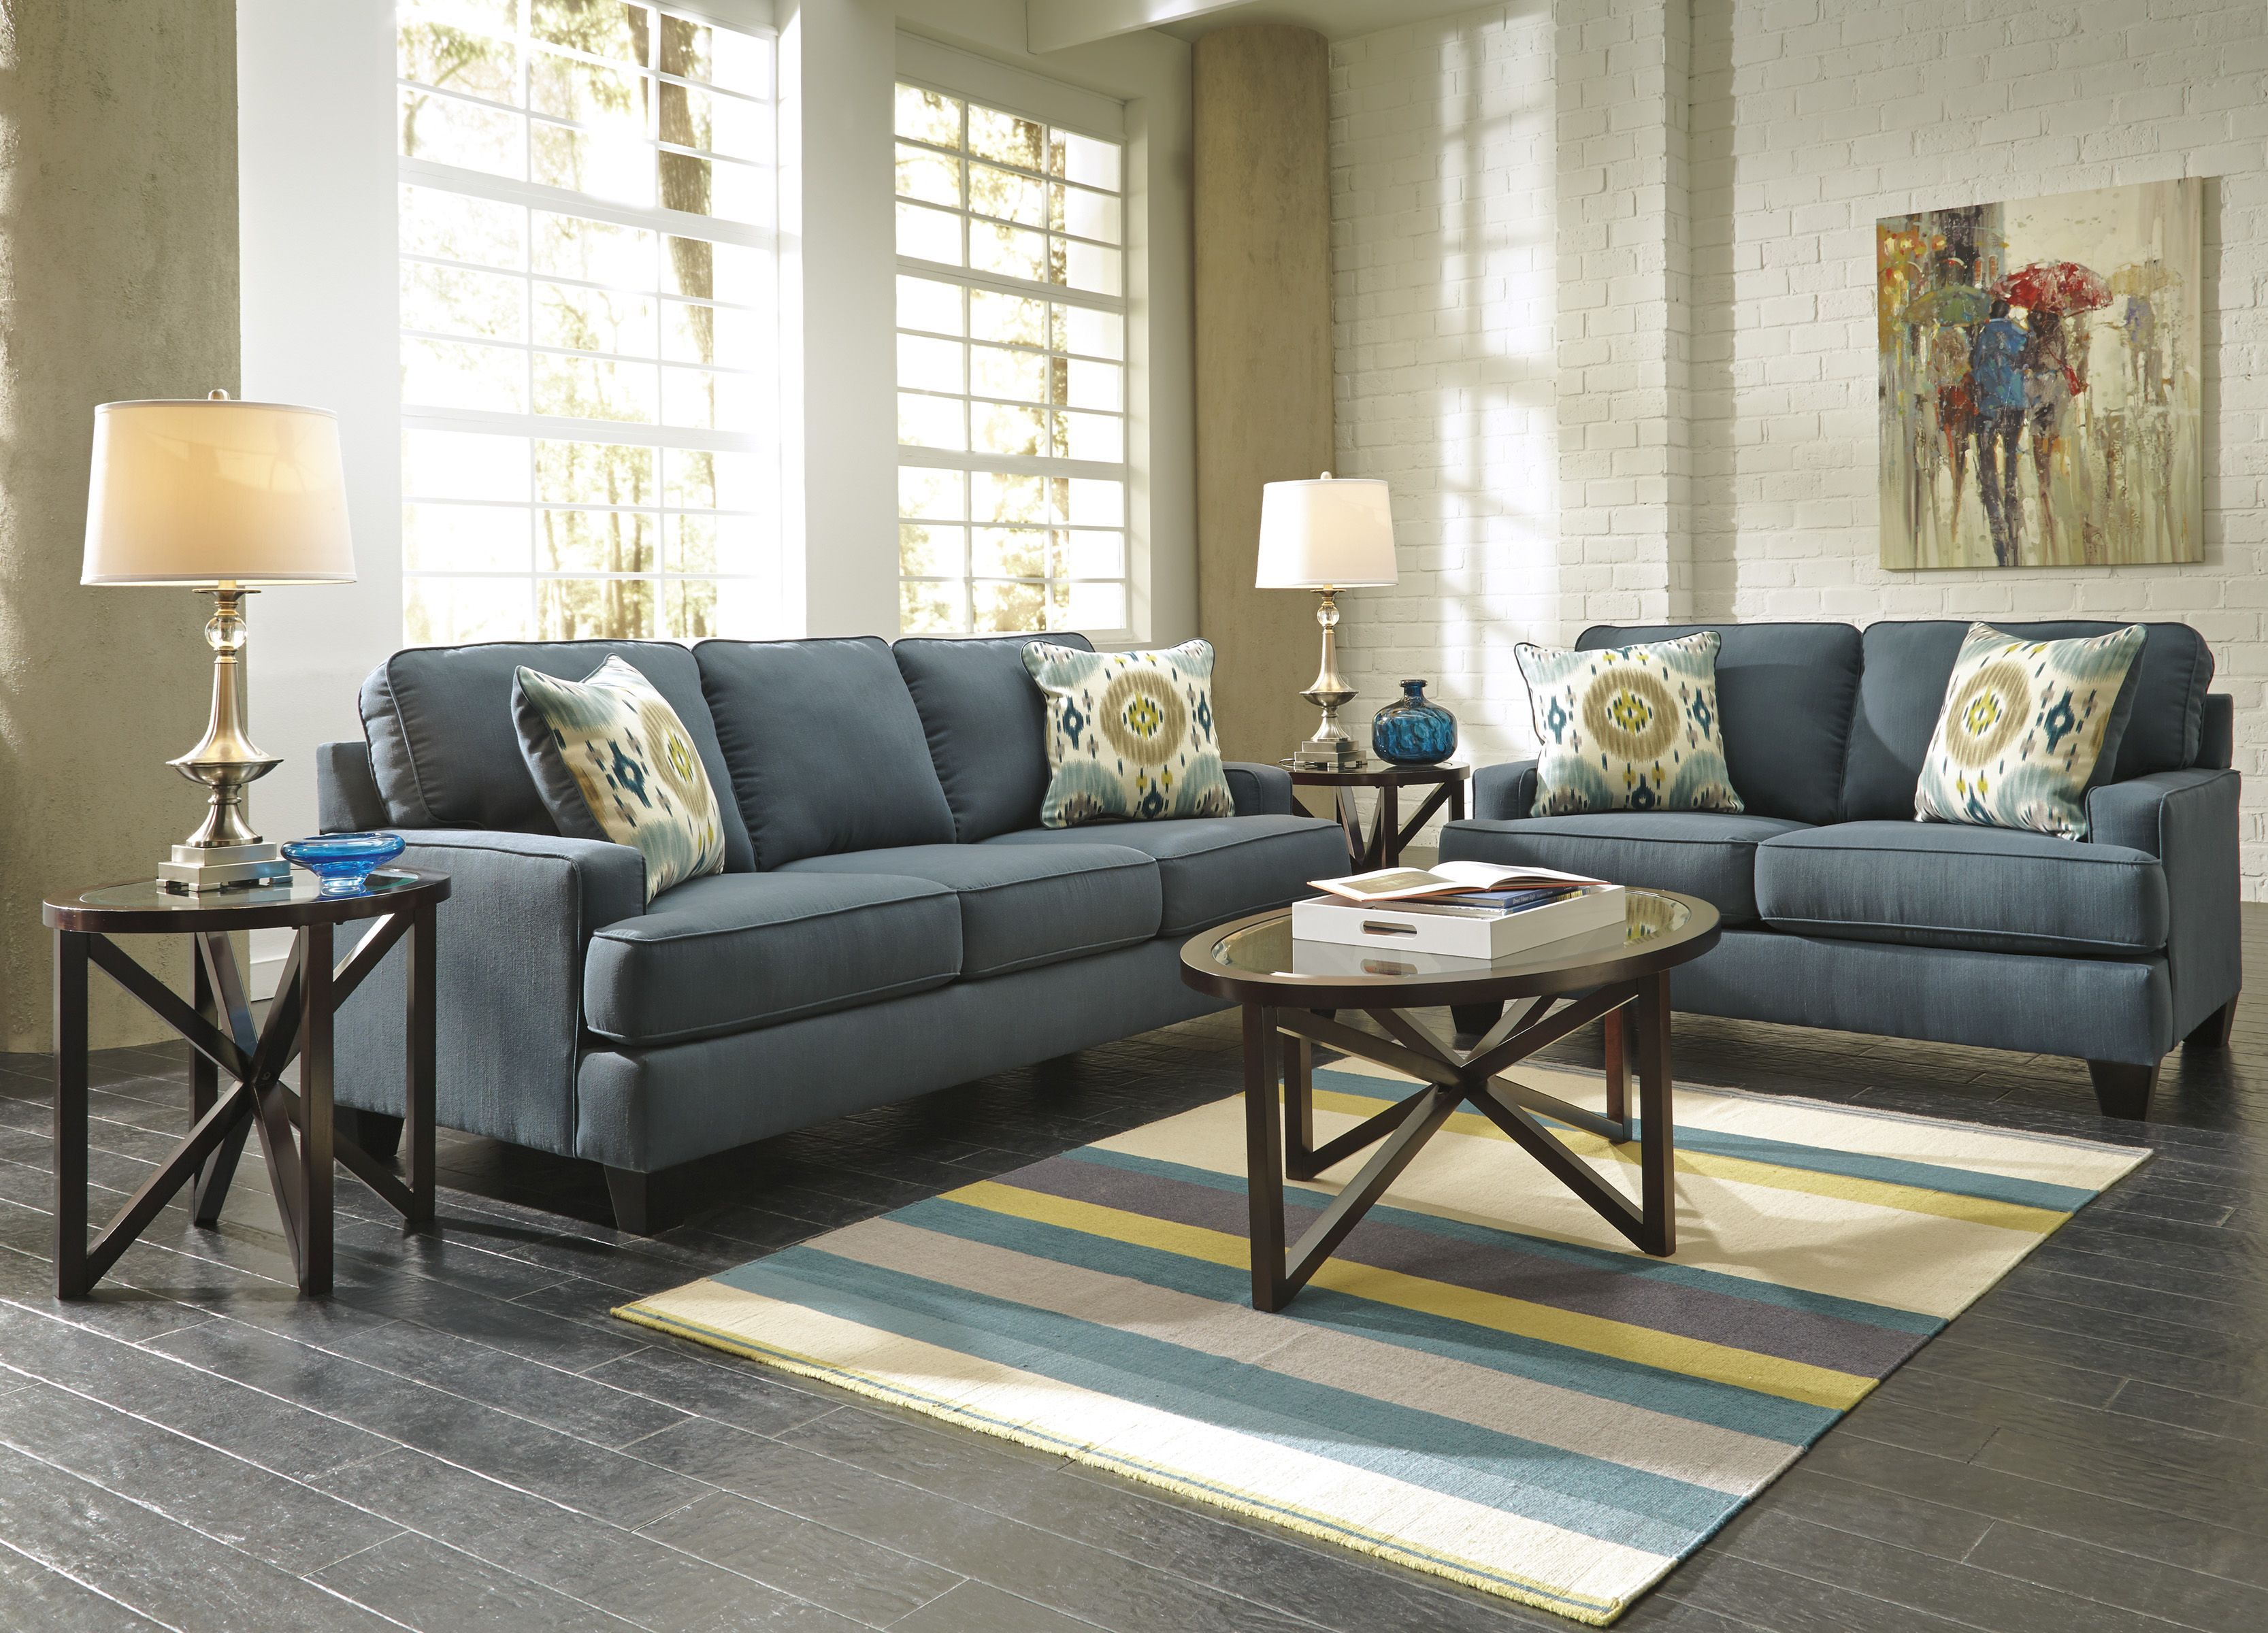 Nice Rent A Center Sofa Beds Elegant 11 For Your Sofas And Couches Set With